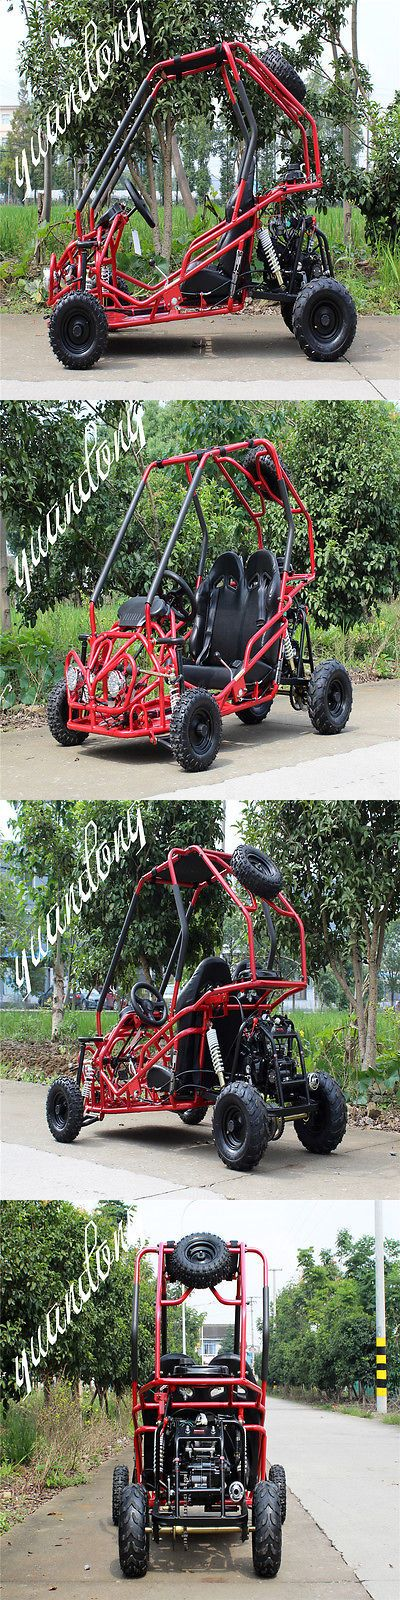 Complete Go-Karts and Frames 64656: Crt Df-Moto 110Cc Go Kart Matte Df110gkb Steel Free Spare Wheels Red Vehicle BUY IT NOW ONLY: $999.99